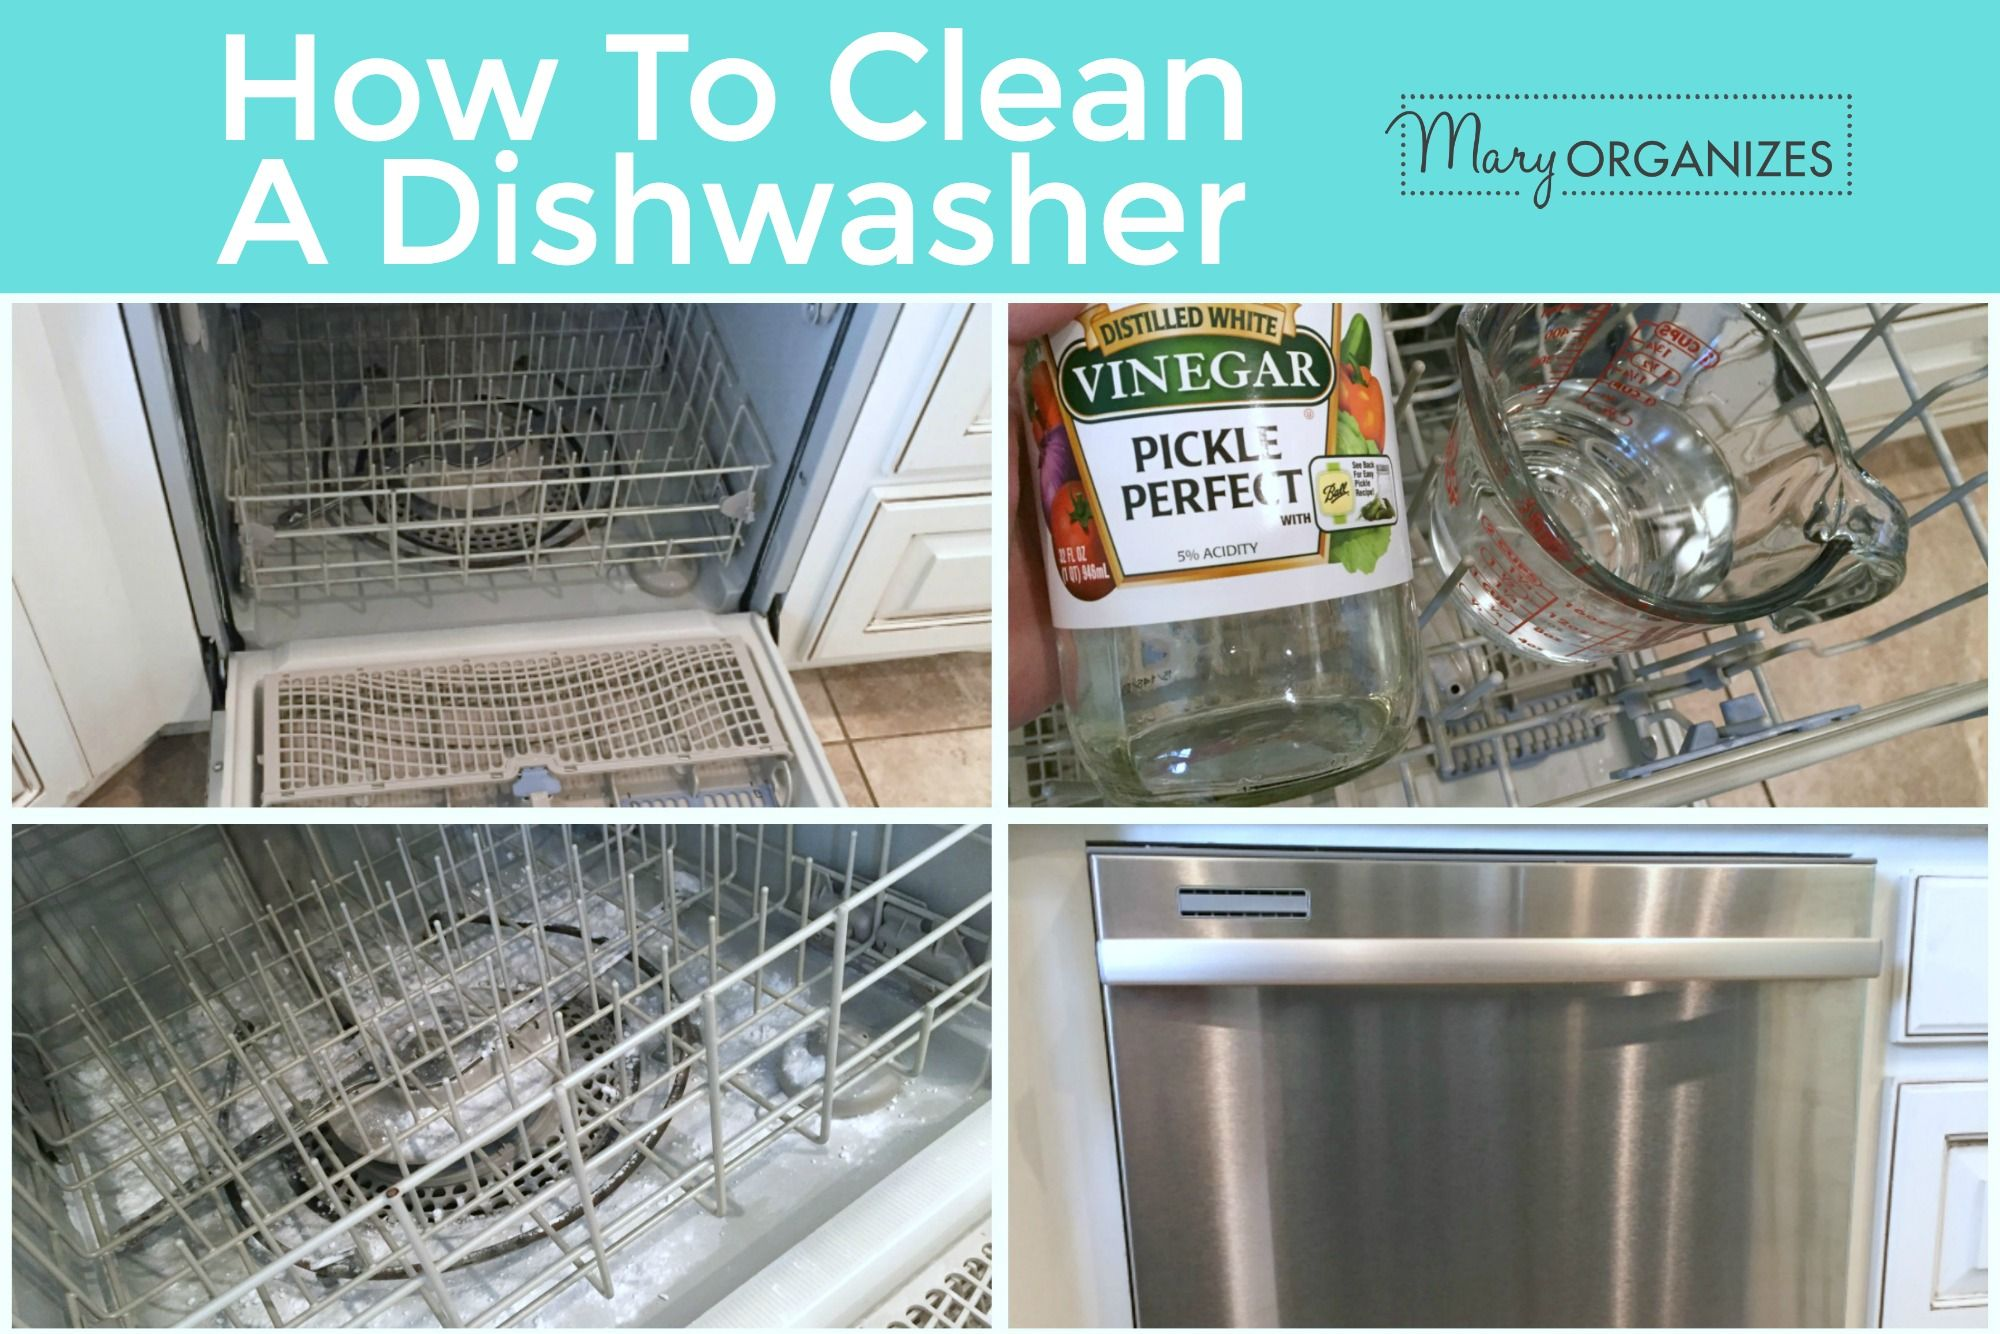 How To Clean Your Dishwasher Creatingmaryshome Com Cleaning Your Dishwasher Clean Dishwasher House Cleaning Tips